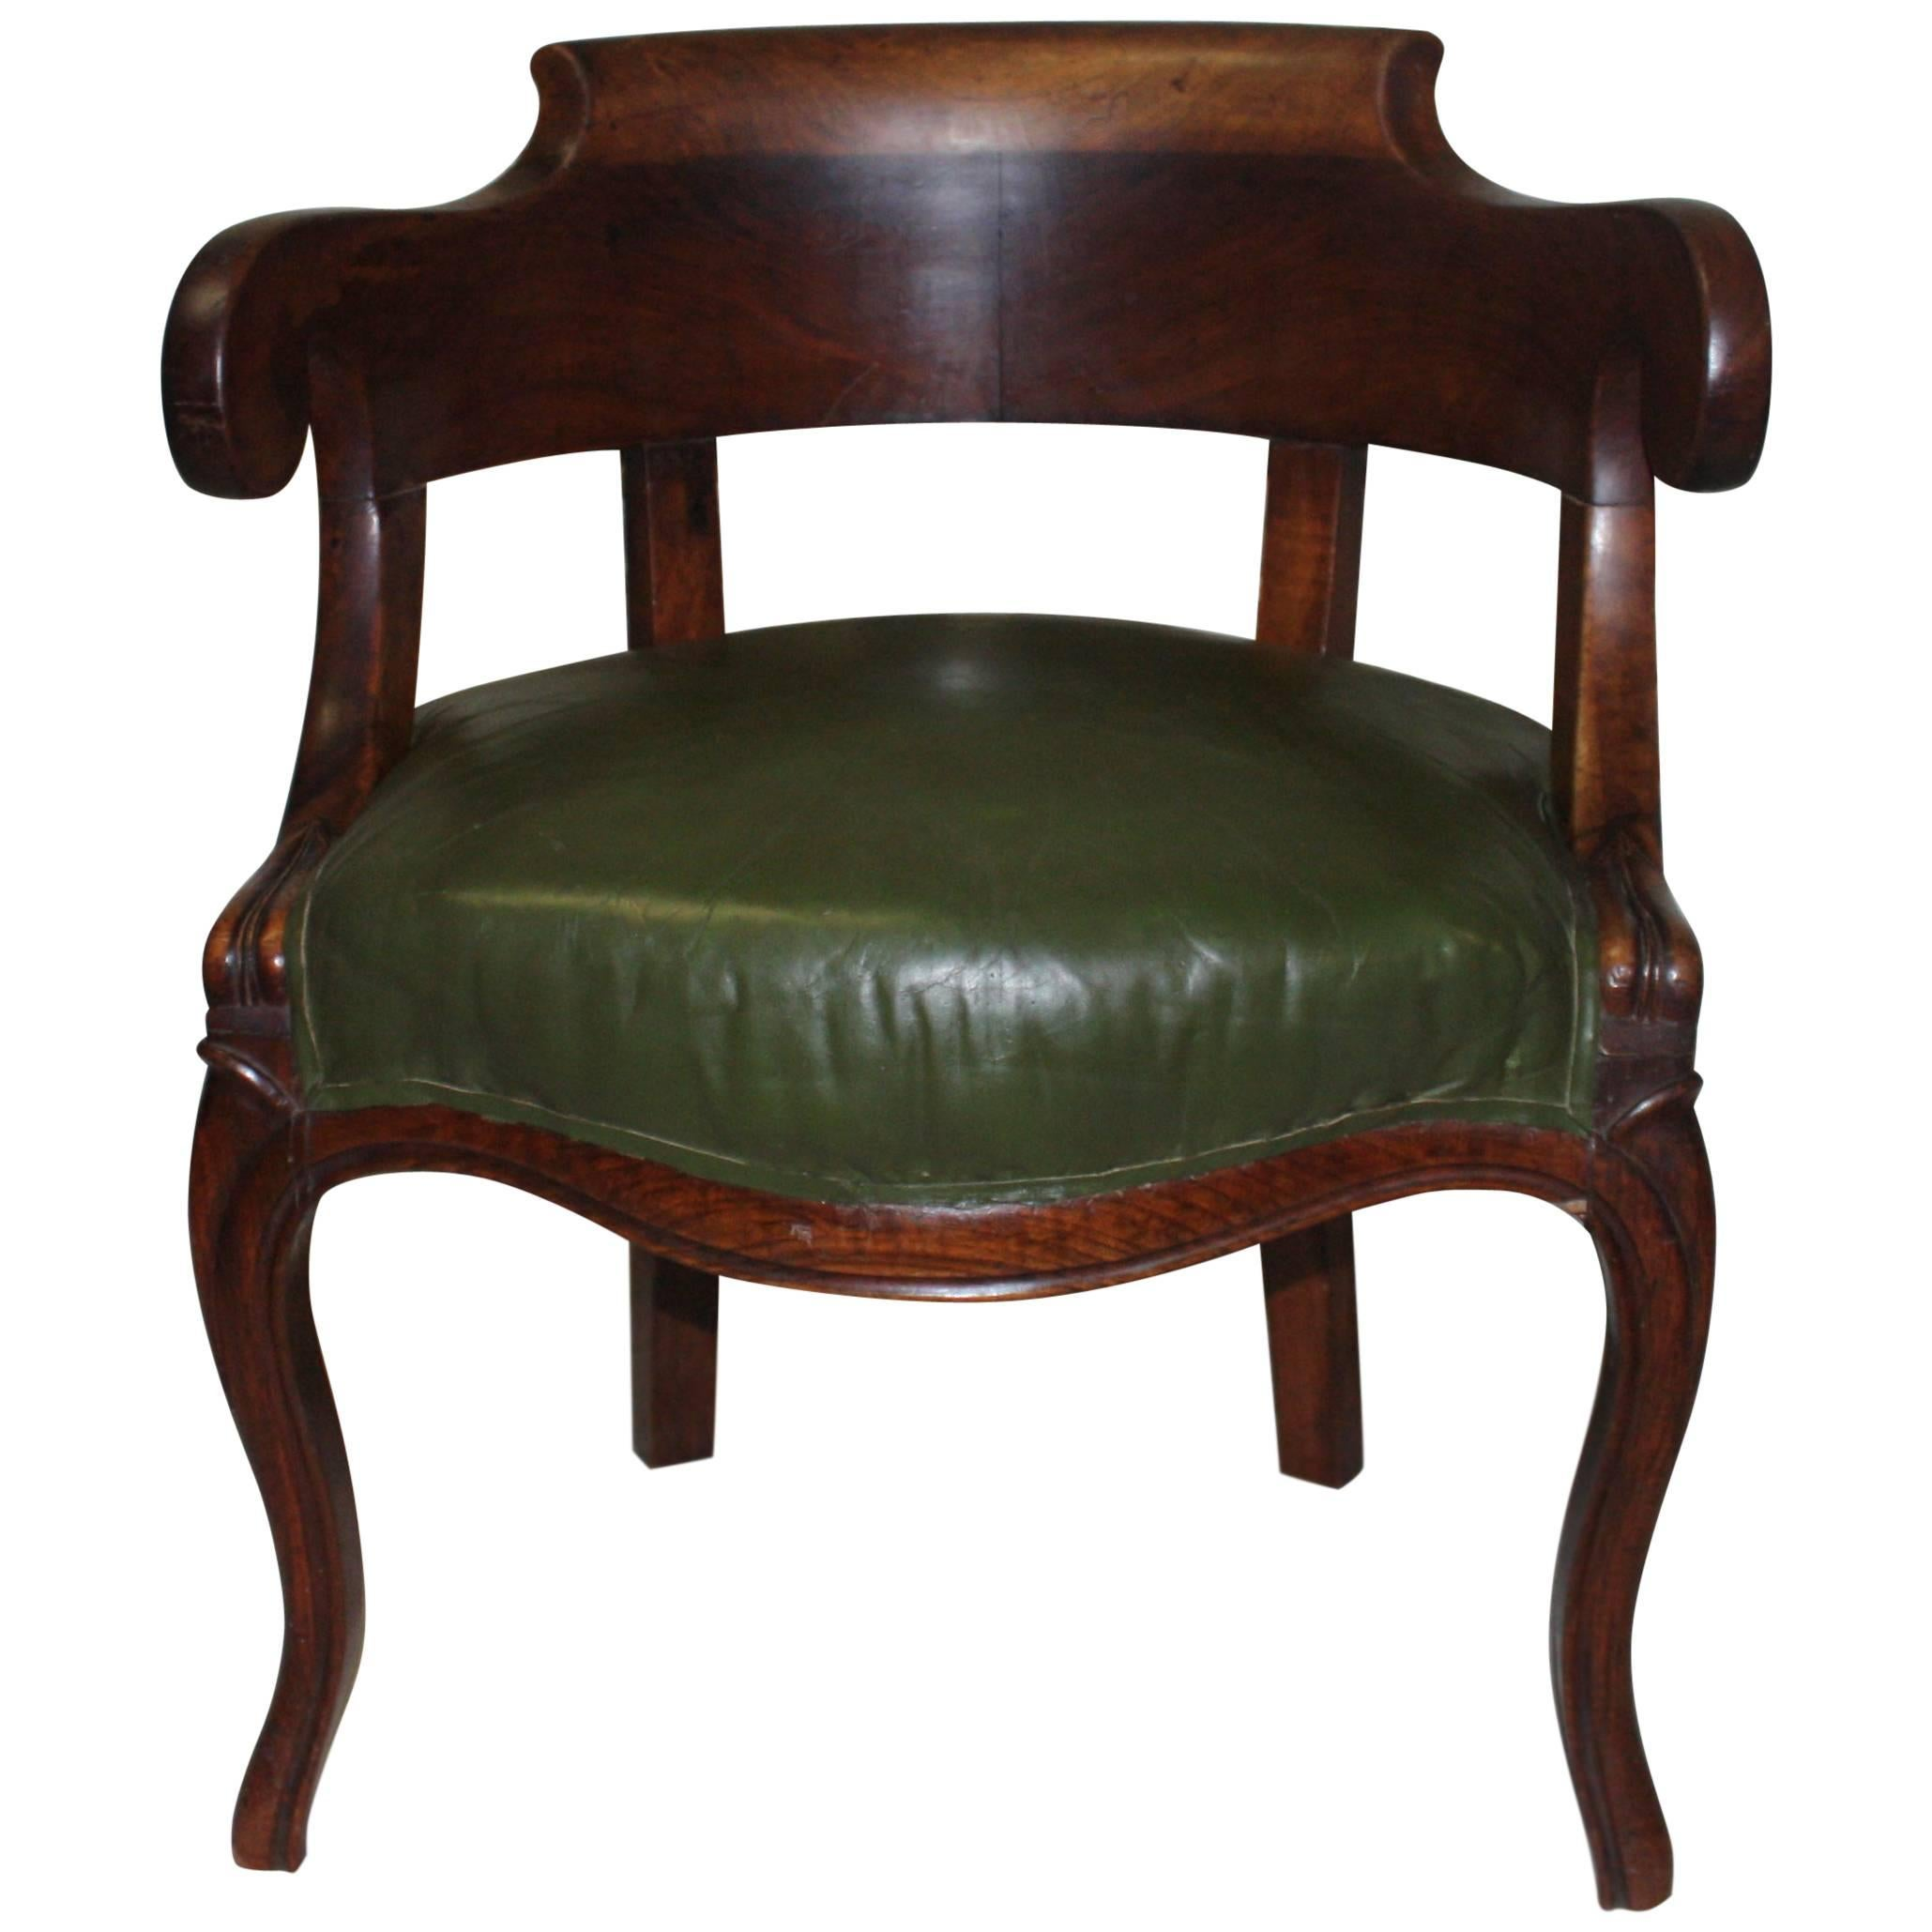 1940S Art Deco Desk Chair From French Governmental Institute For